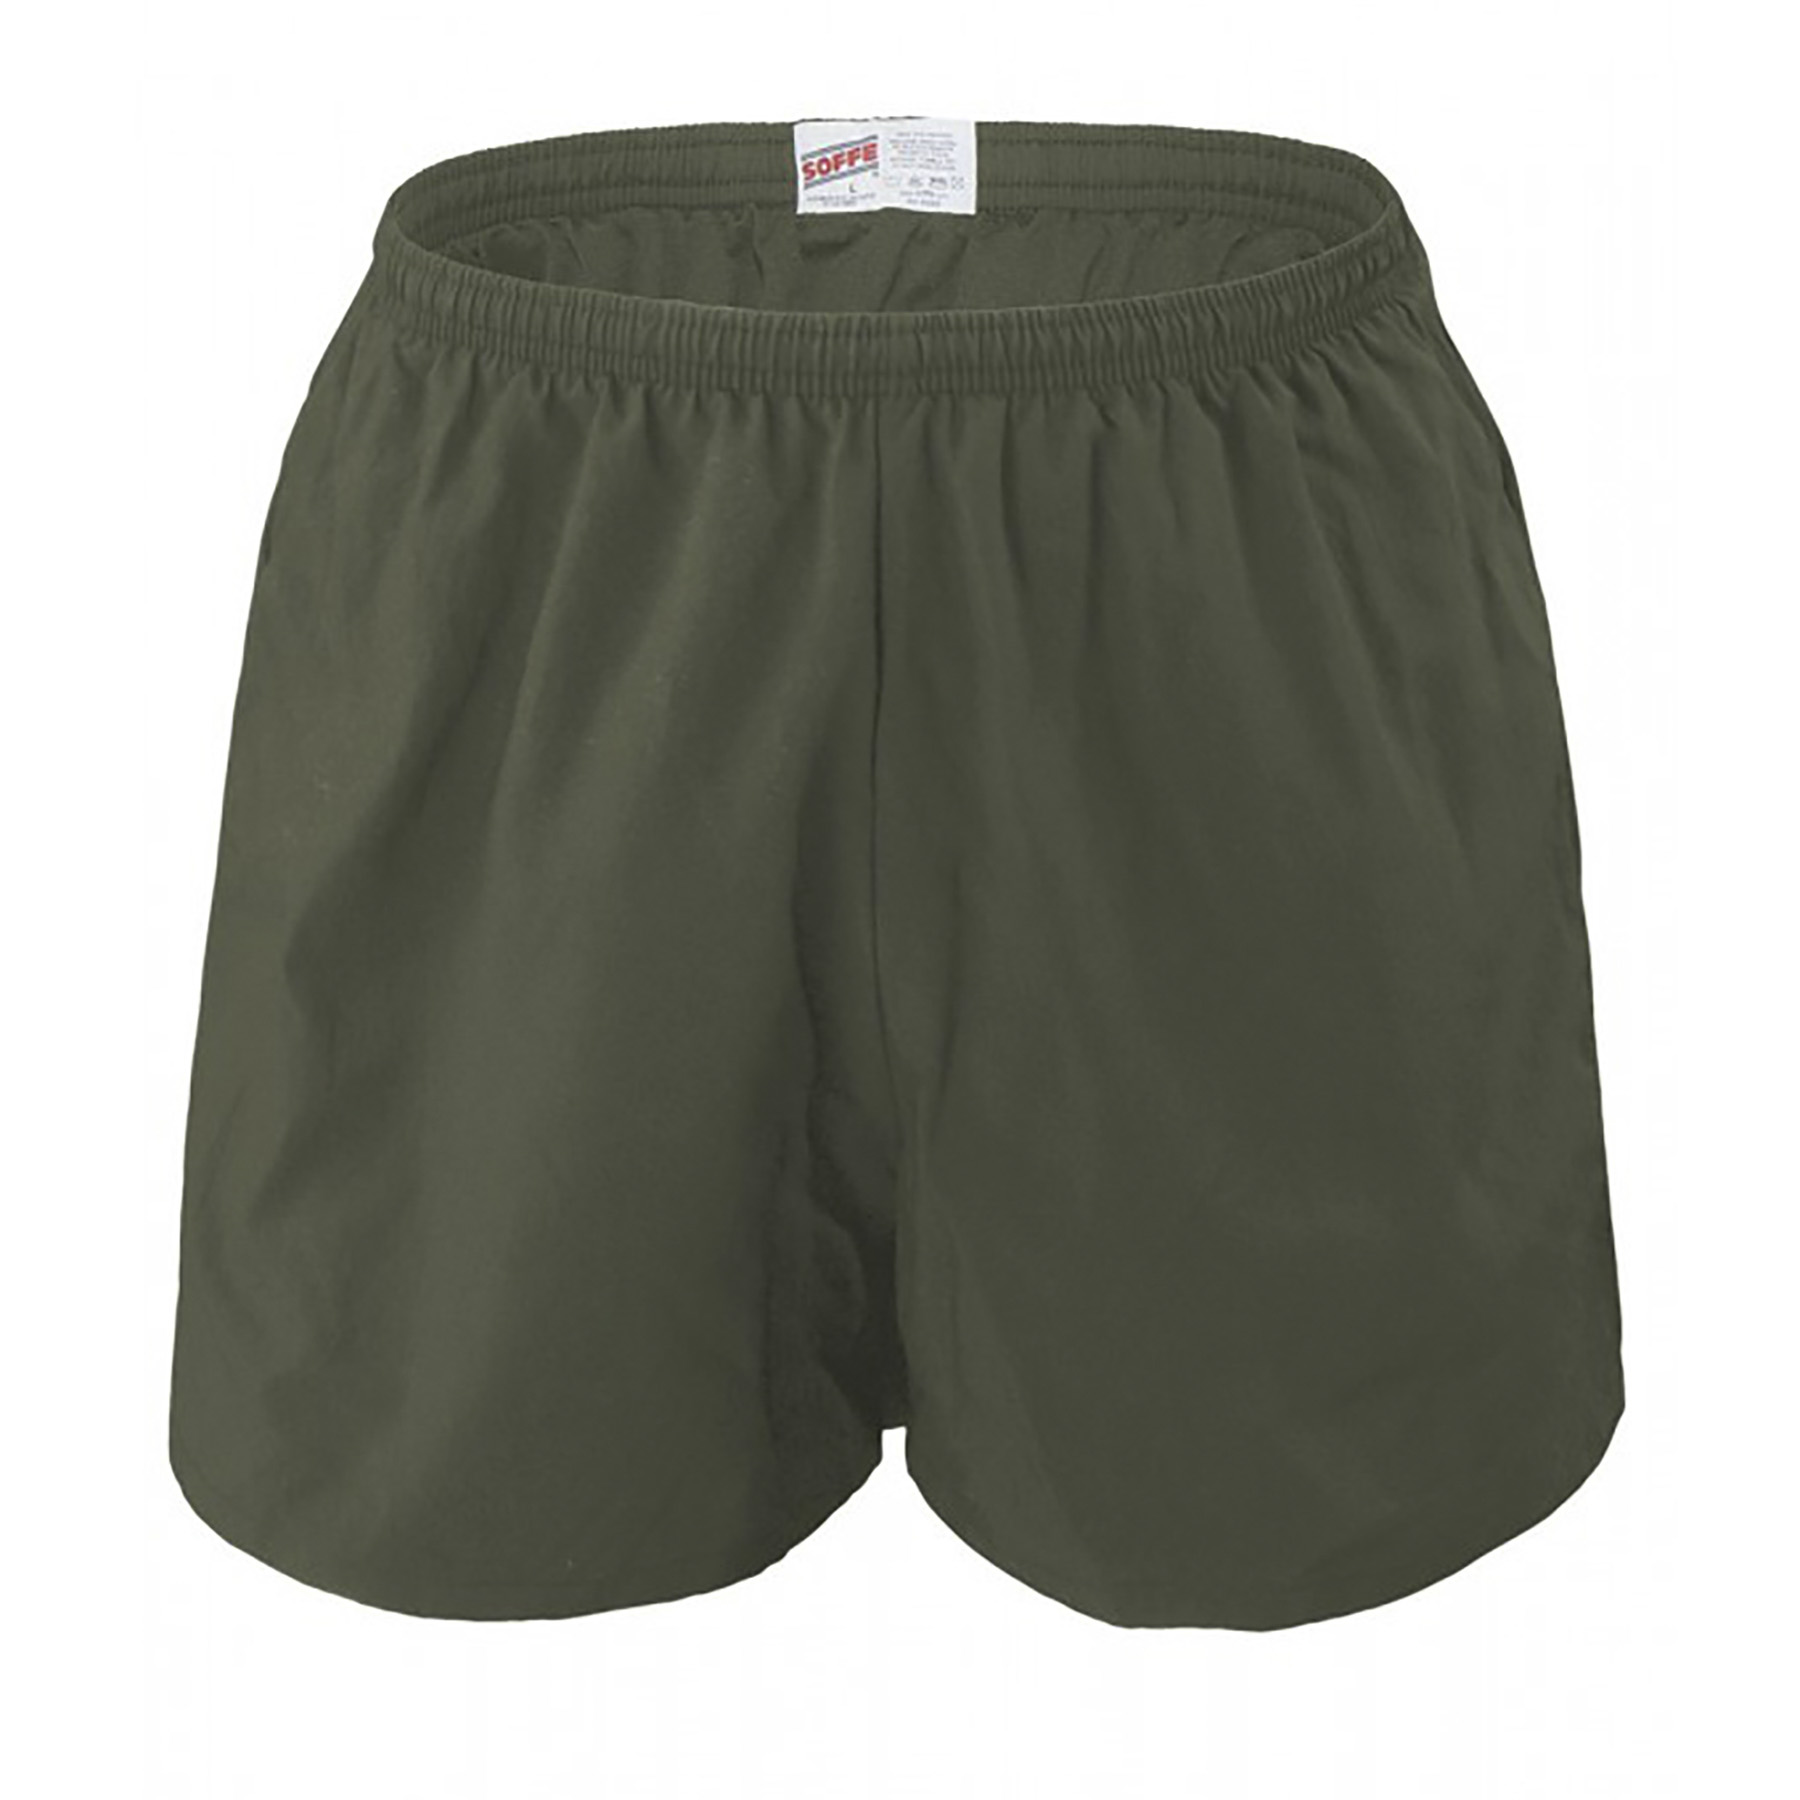 Soffe OD Green Performance Shorts